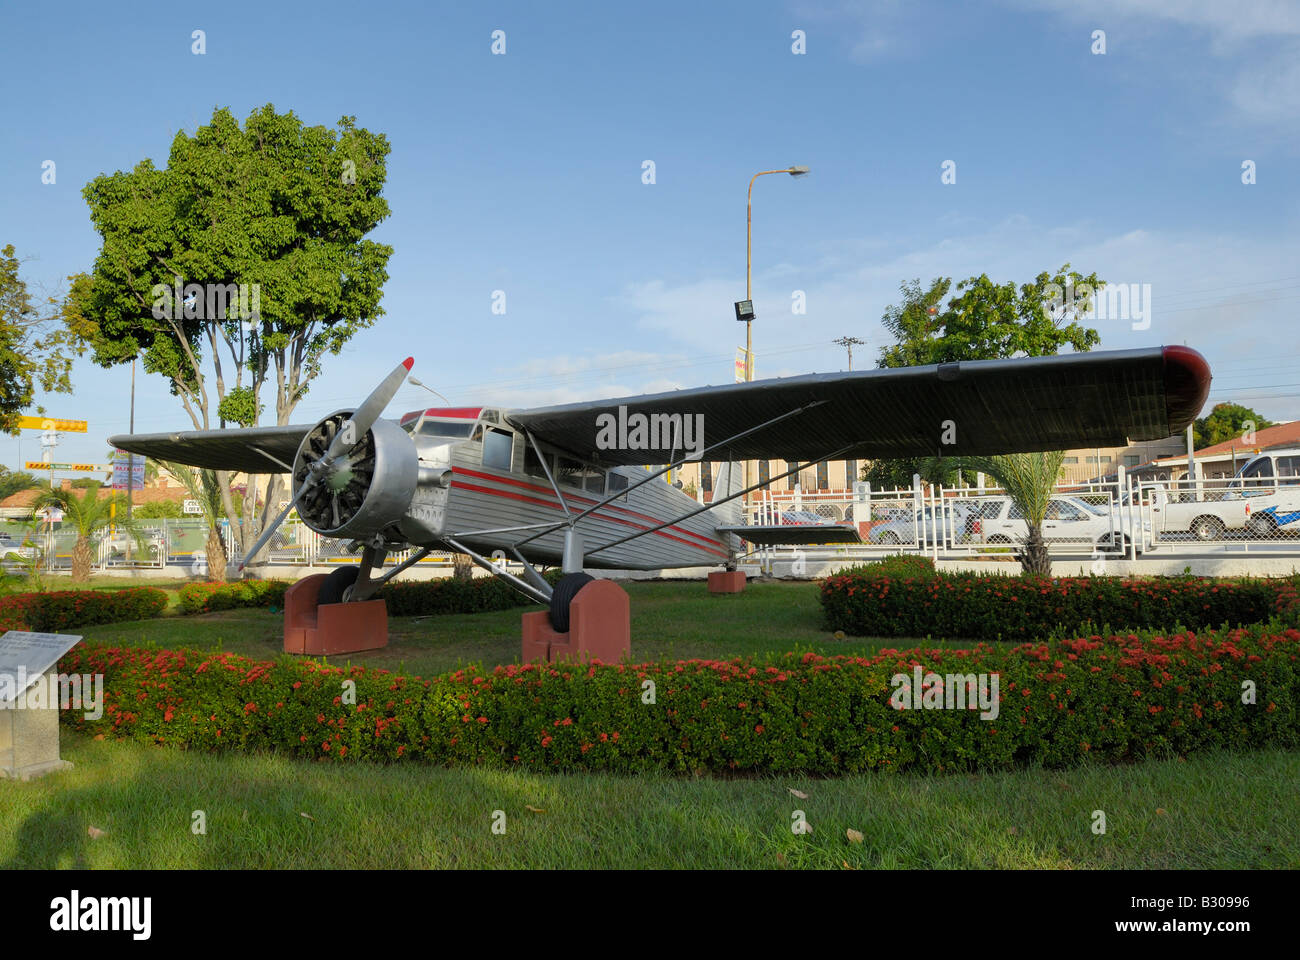 Jimmy Angels plane, CIUDAD BOLIVAR, Venezuela, South America - Stock Image